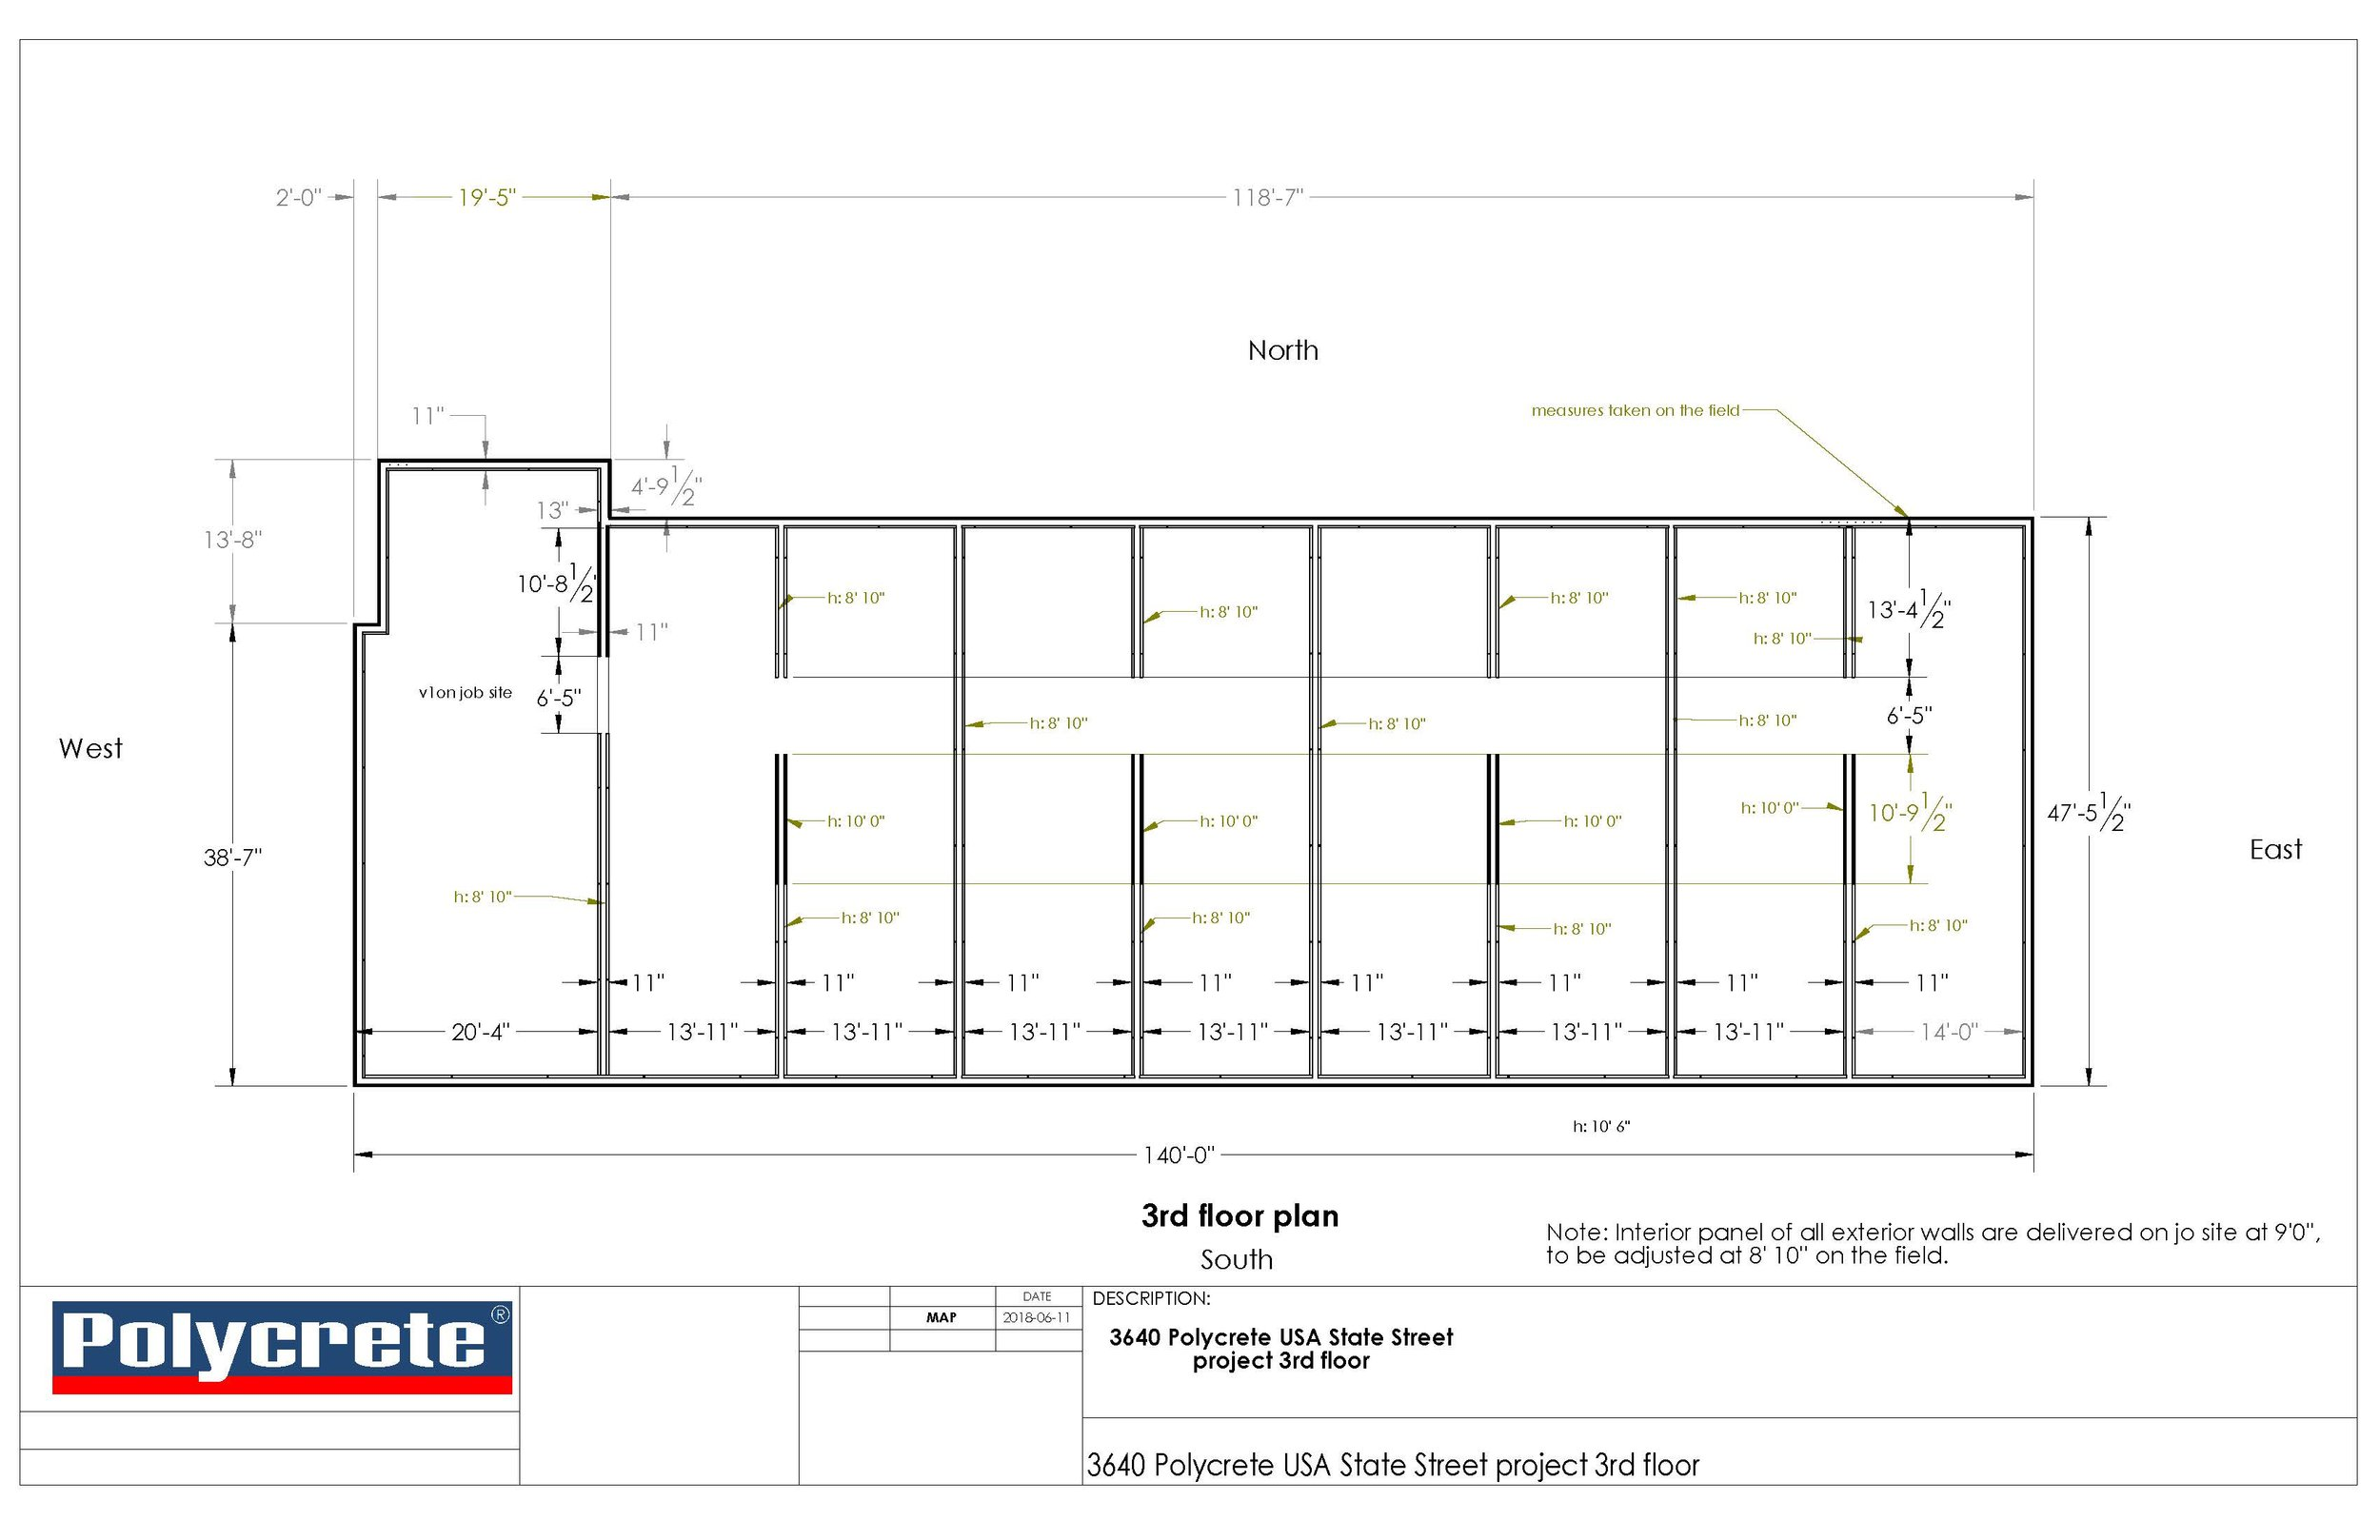 Pages from 3640 Polycrete USA State Street project 3rd floor plans d'installation.jpg